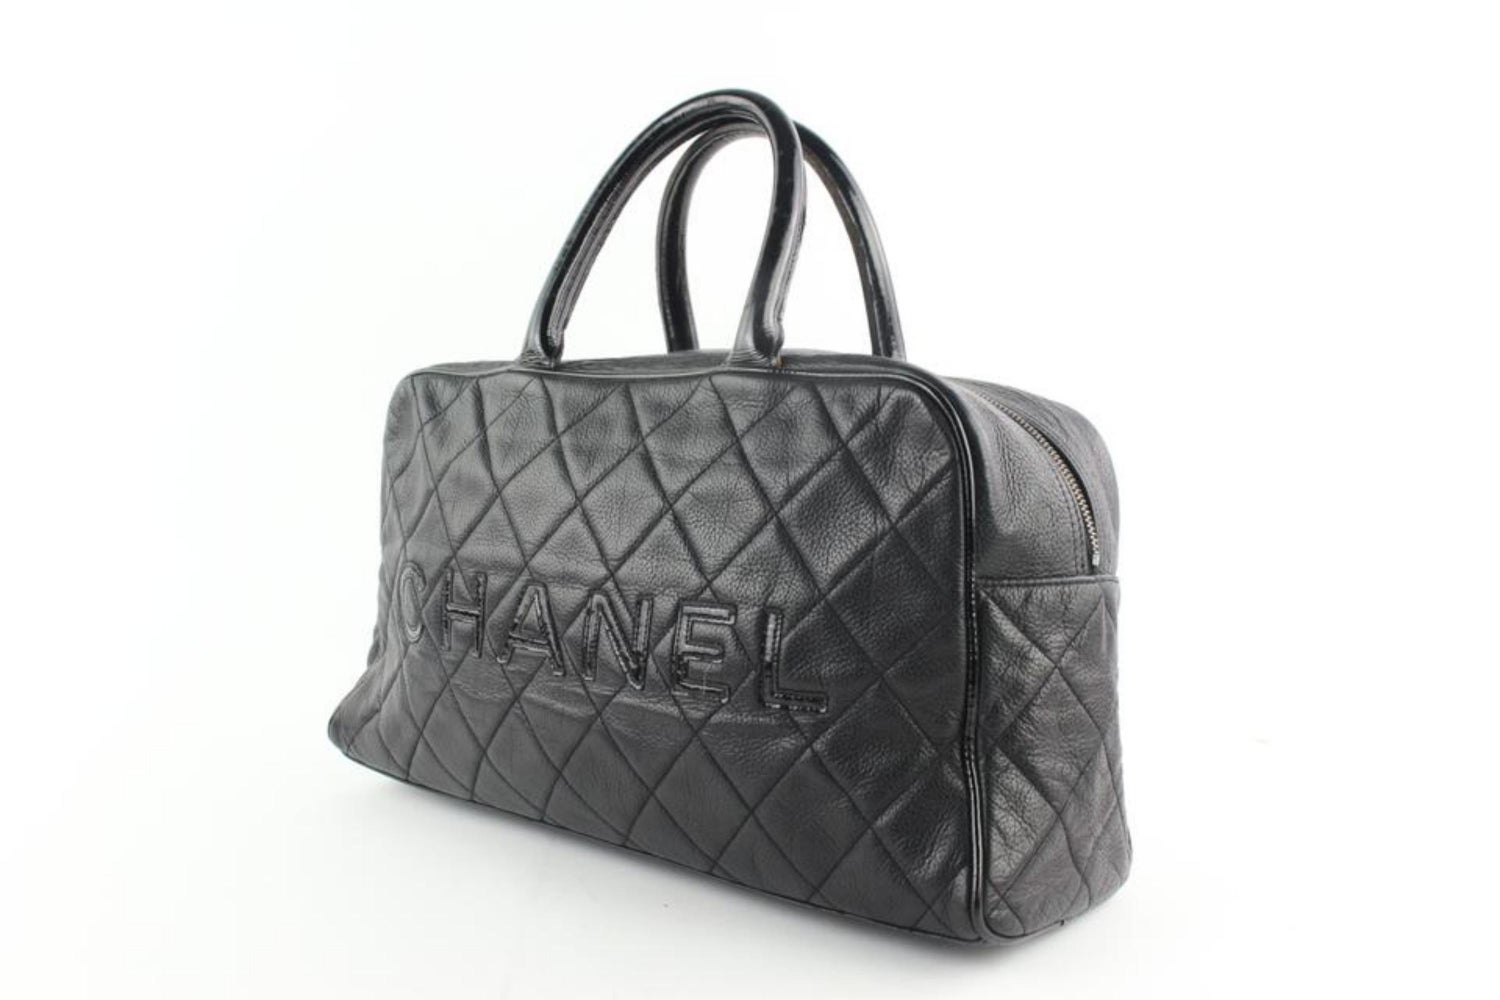 9a56ac2f41b4 Chanel Duffle Quilted Caviar Jumbo Boston 224146 Black Leather Weekend/TravelBag  For Sale at 1stdibs